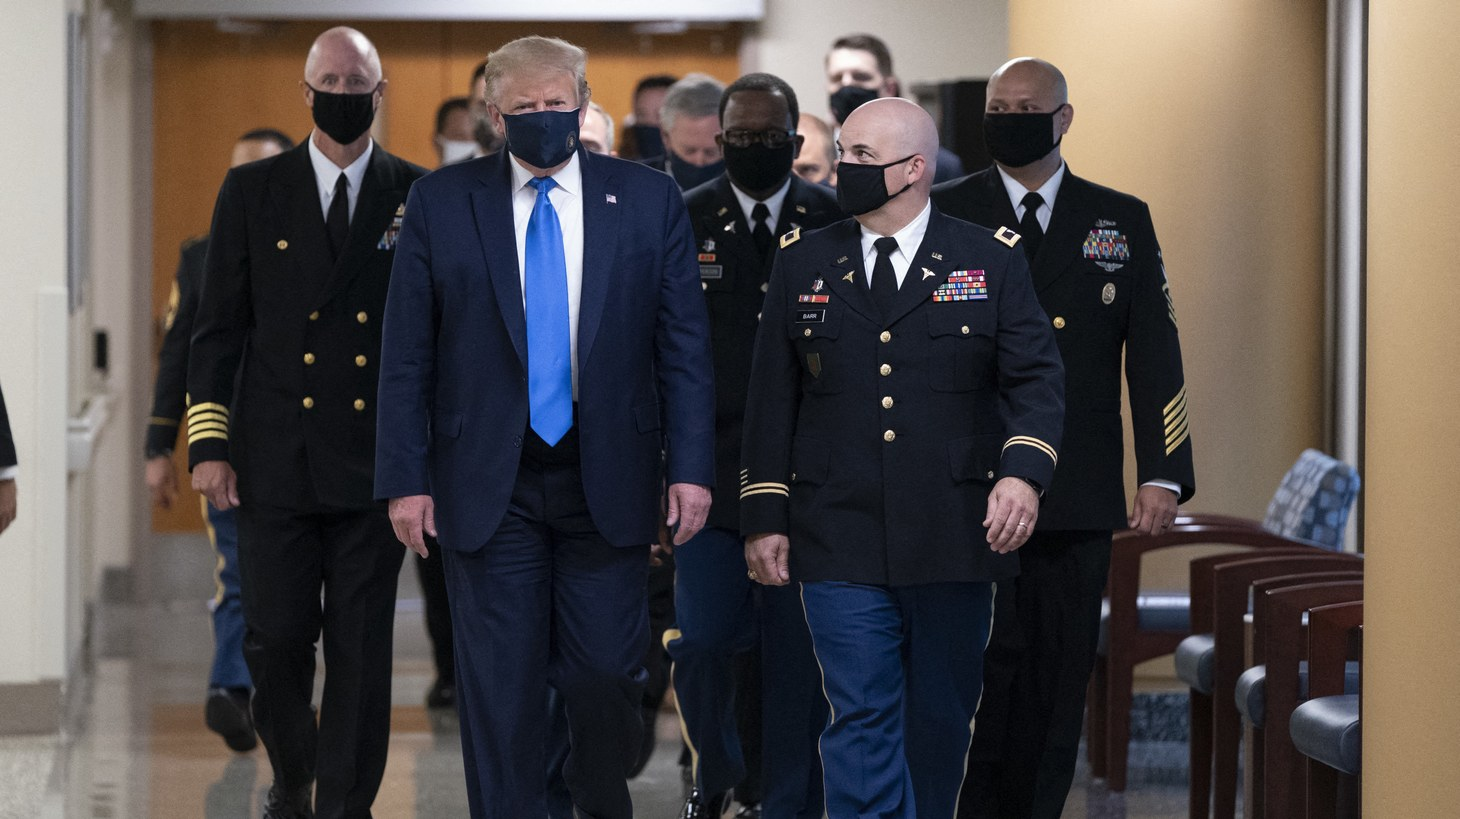 """President Donald Trump arrives at Walter Reed National Military Medical Center to visit with wounded military members and front line coronavirus healthcare workers in Bethesda, MD, USA. US President Donald Trump has worn a mask in public for the first time since the start of the coronavirus pandemic. The president was visiting the Walter Reed military hospital outside Washington, where he met wounded soldiers and health care workers. """"I've never been against masks but I do believe they have a time and a place,"""" he said as he left the White House. He has previously said that he would not wear a mask and mocked Democratic rival Joe Biden for doing so."""